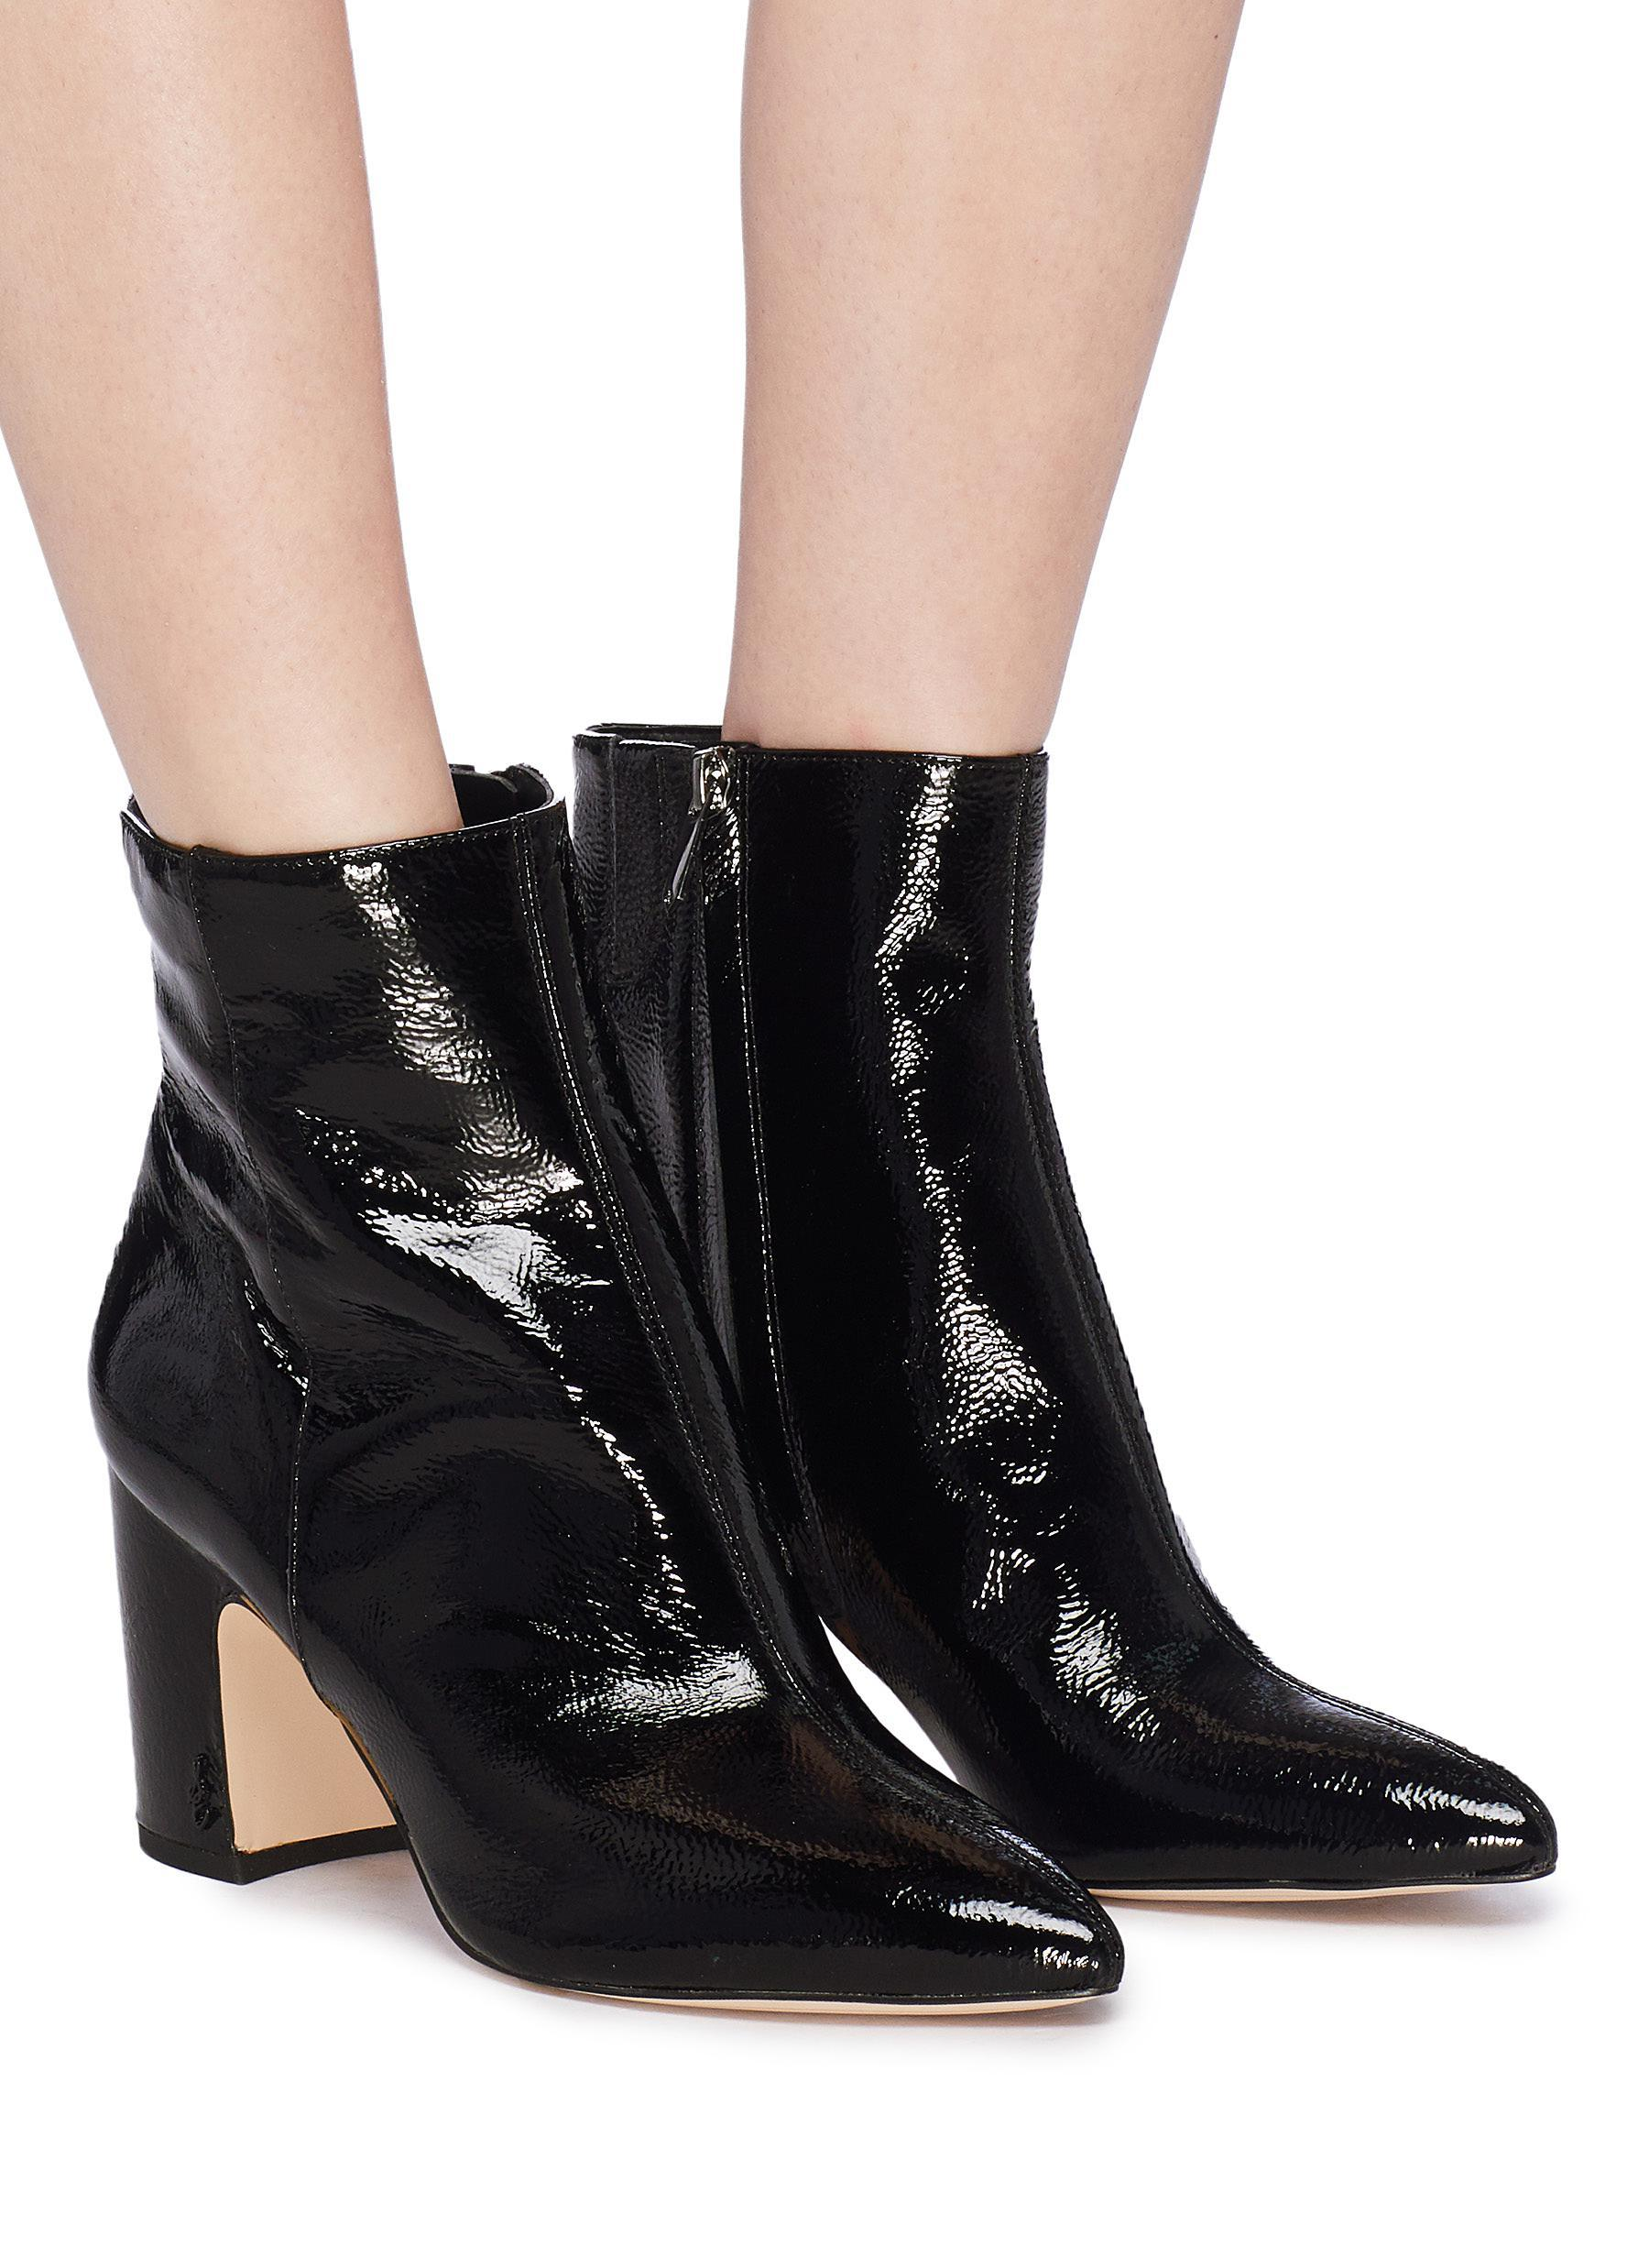 1a509db75ae93 Lyst - Sam Edelman  hilty  Crinkled Patent Leather Ankle Boots in Black